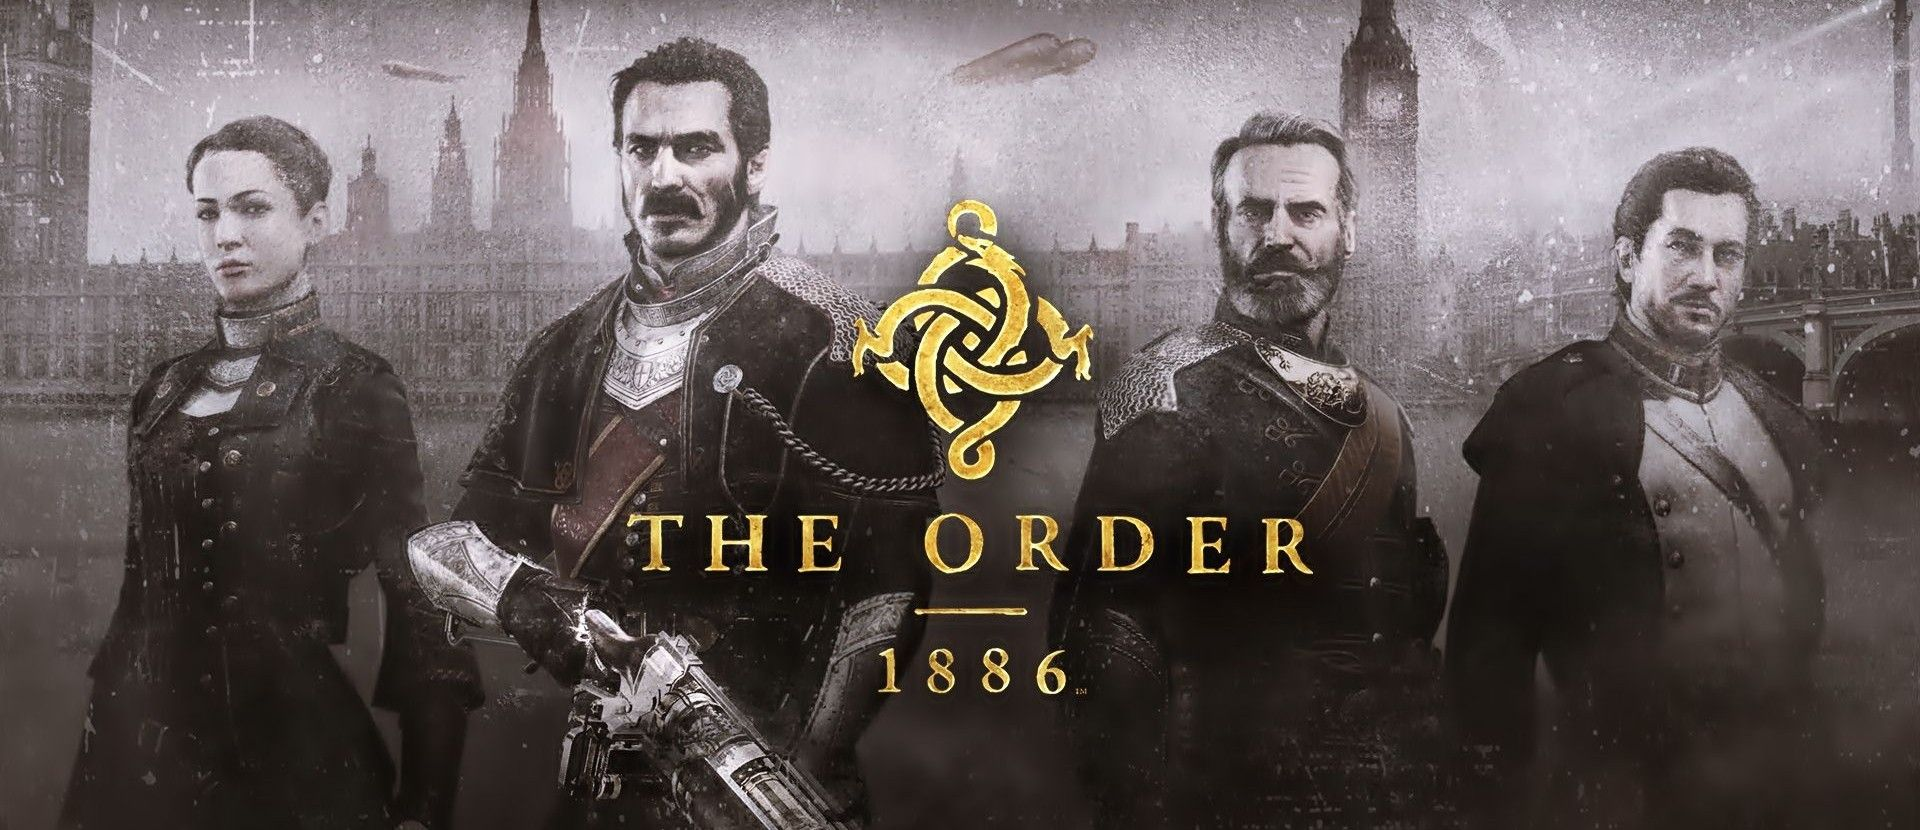 PS4-exclusive The Order: 1886 - hype or hit?  http://www.senses.se/the-order-1886-recension/